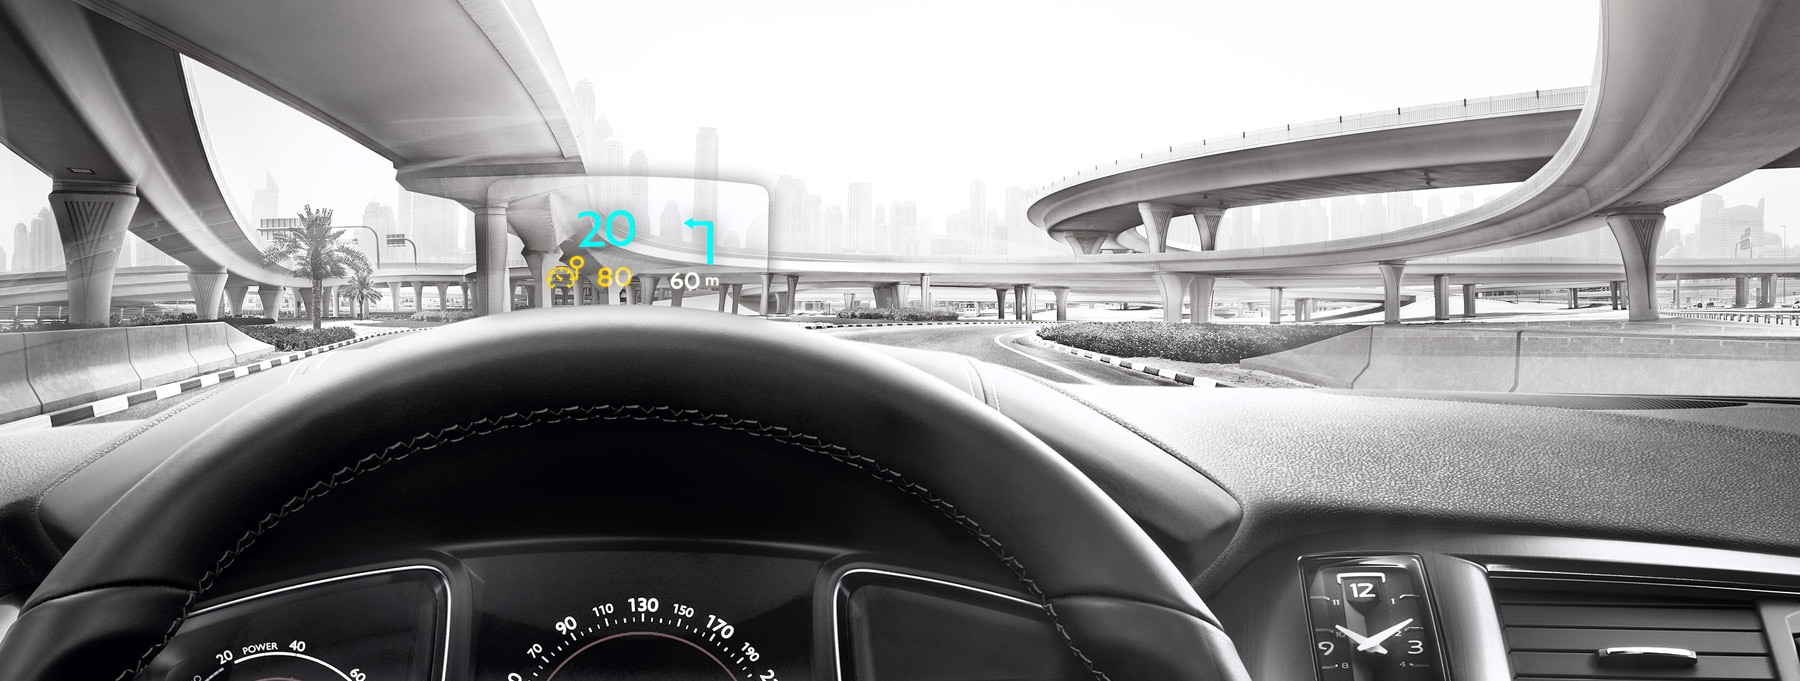 Safety - Head-up display